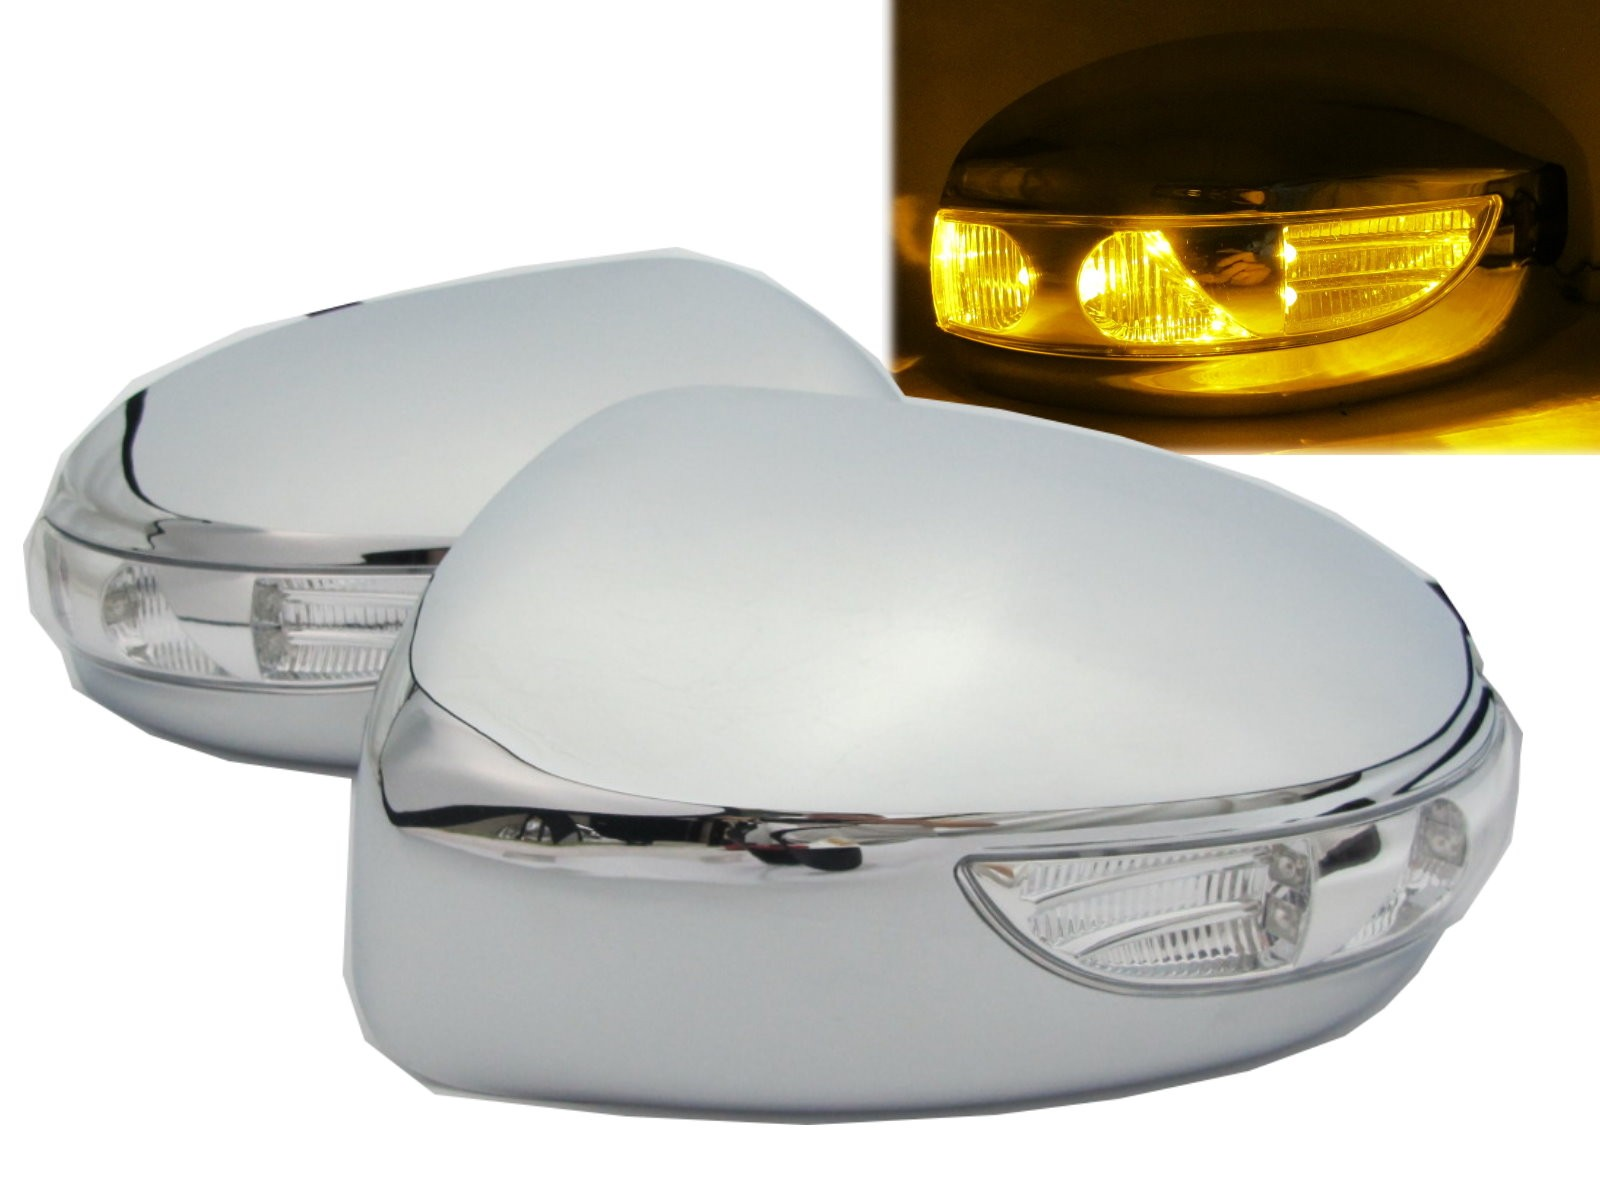 CrazyTheGod FX30d FX35 FX37 FX50 S51 2009-2013 Amber LED Signal Mirror Cover CHROME for INFINITI